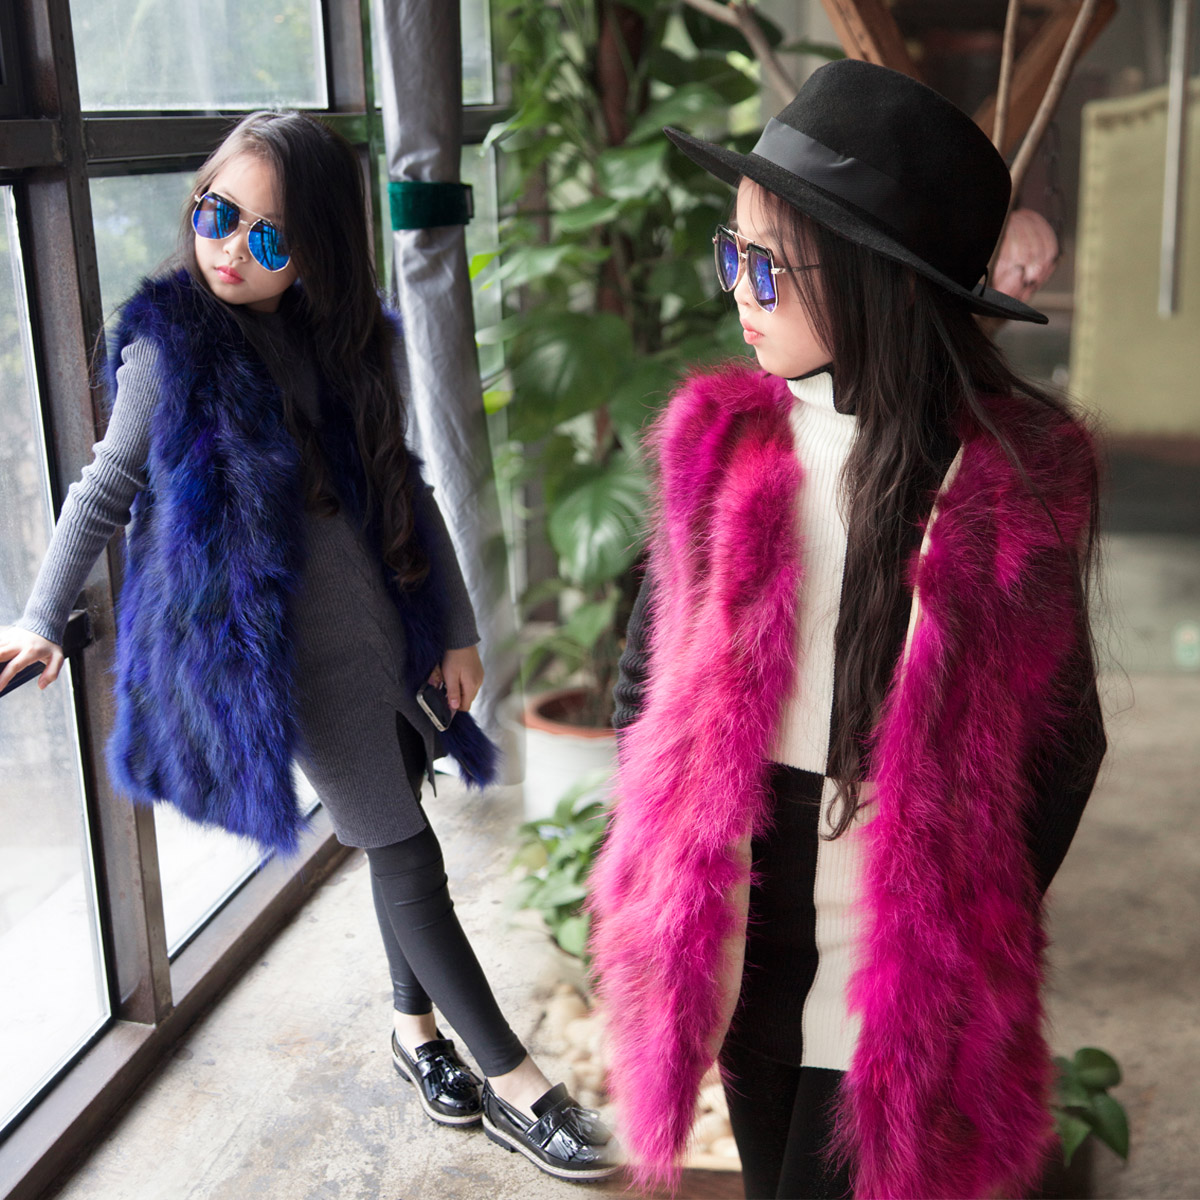 Europe and The United States Childrens Fur Coat Girls High-grade Raccoon Fur Fashion Leisure Long Vest Sleeveless Vest JacketEurope and The United States Childrens Fur Coat Girls High-grade Raccoon Fur Fashion Leisure Long Vest Sleeveless Vest Jacket